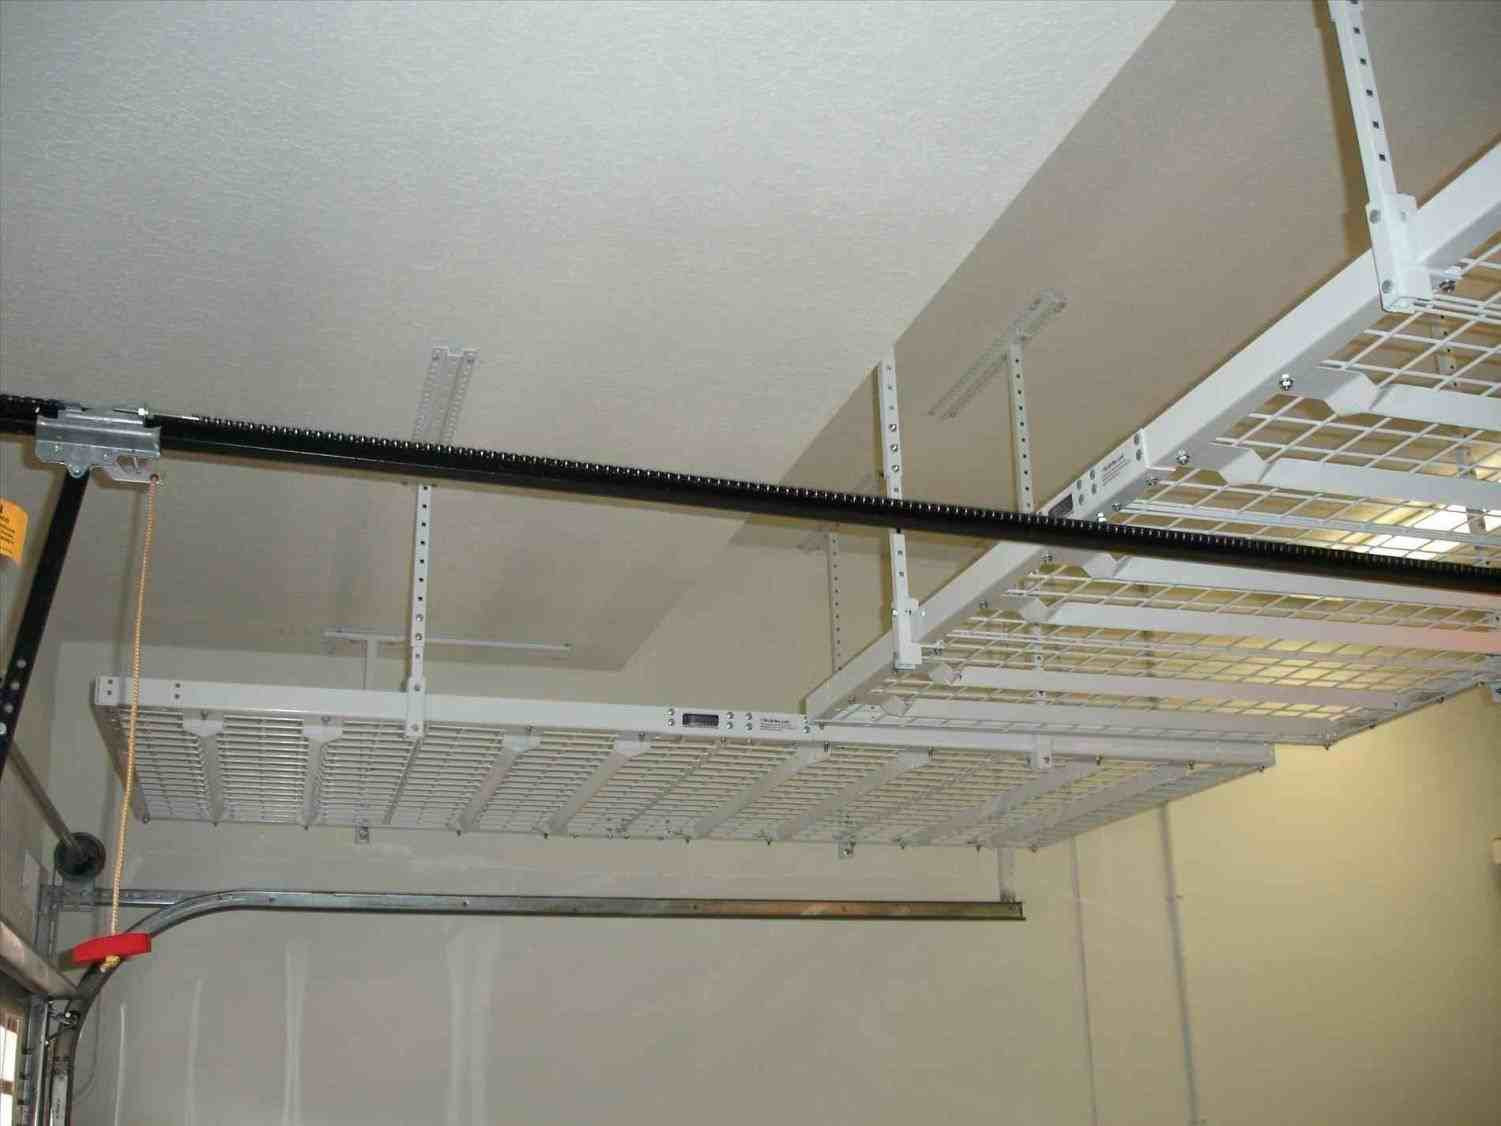 Best ideas about Diy Overhead Garage Storage Pulley System . Save or Pin Garage Overhead Storage Pulley Systems ARCH DSGN Now.